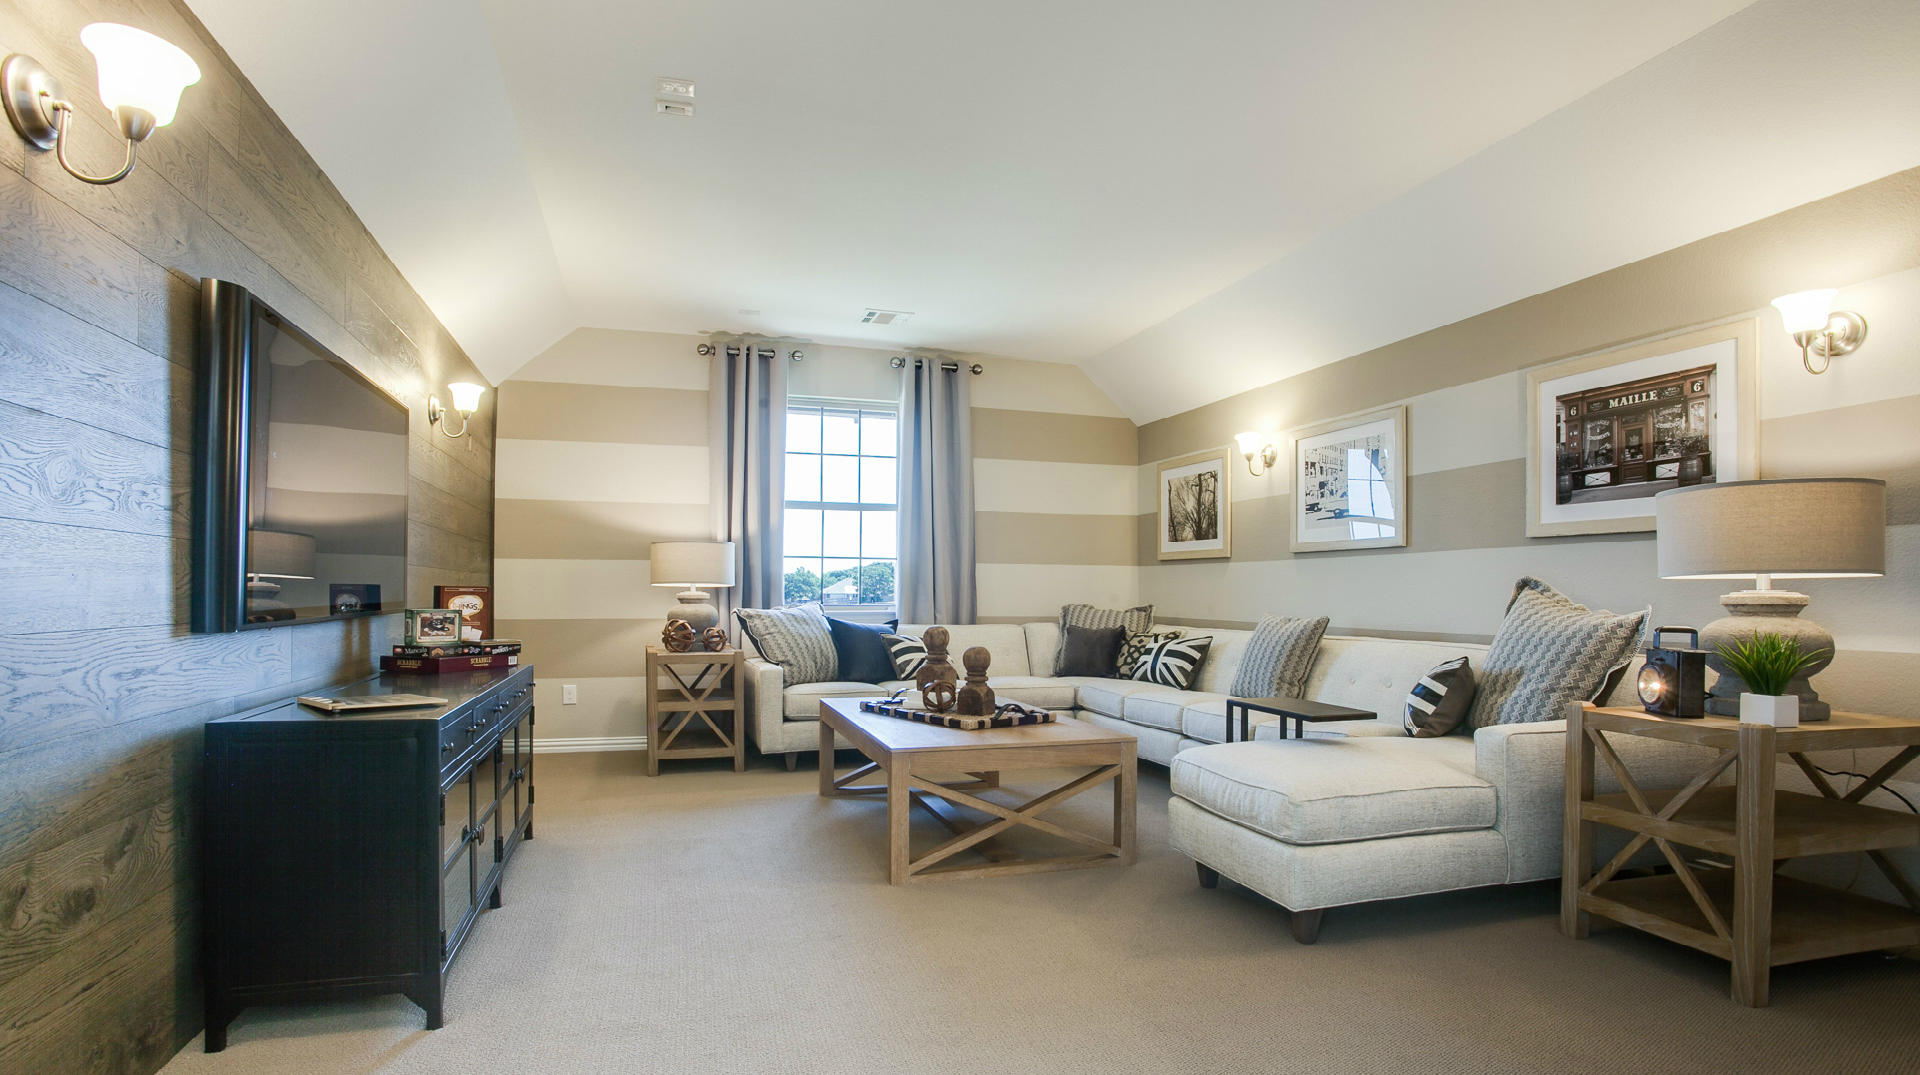 Reserve at Forest Glenn by Pulte Homes image 2